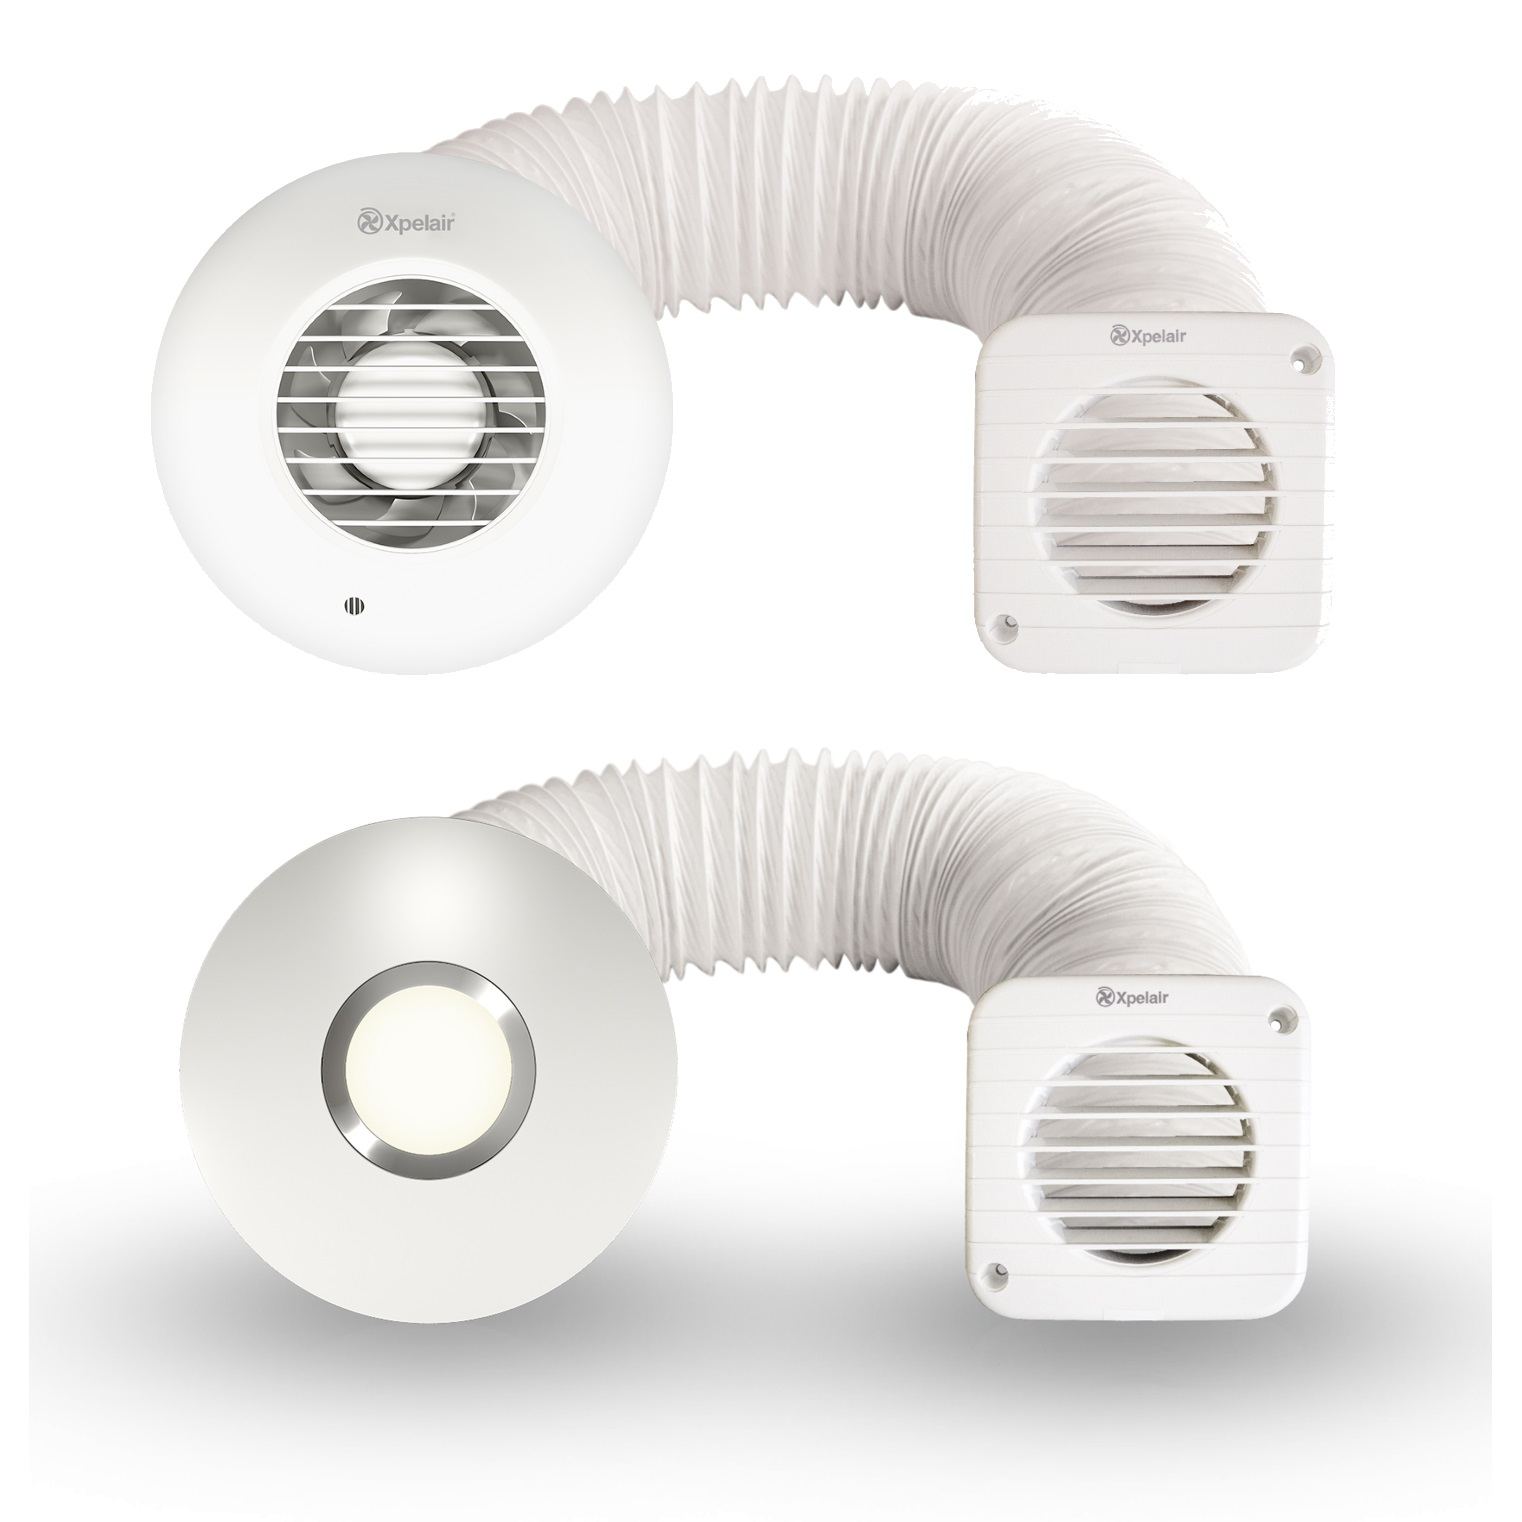 Xpelair Simply Silent Shower Fan Complete Optional Light